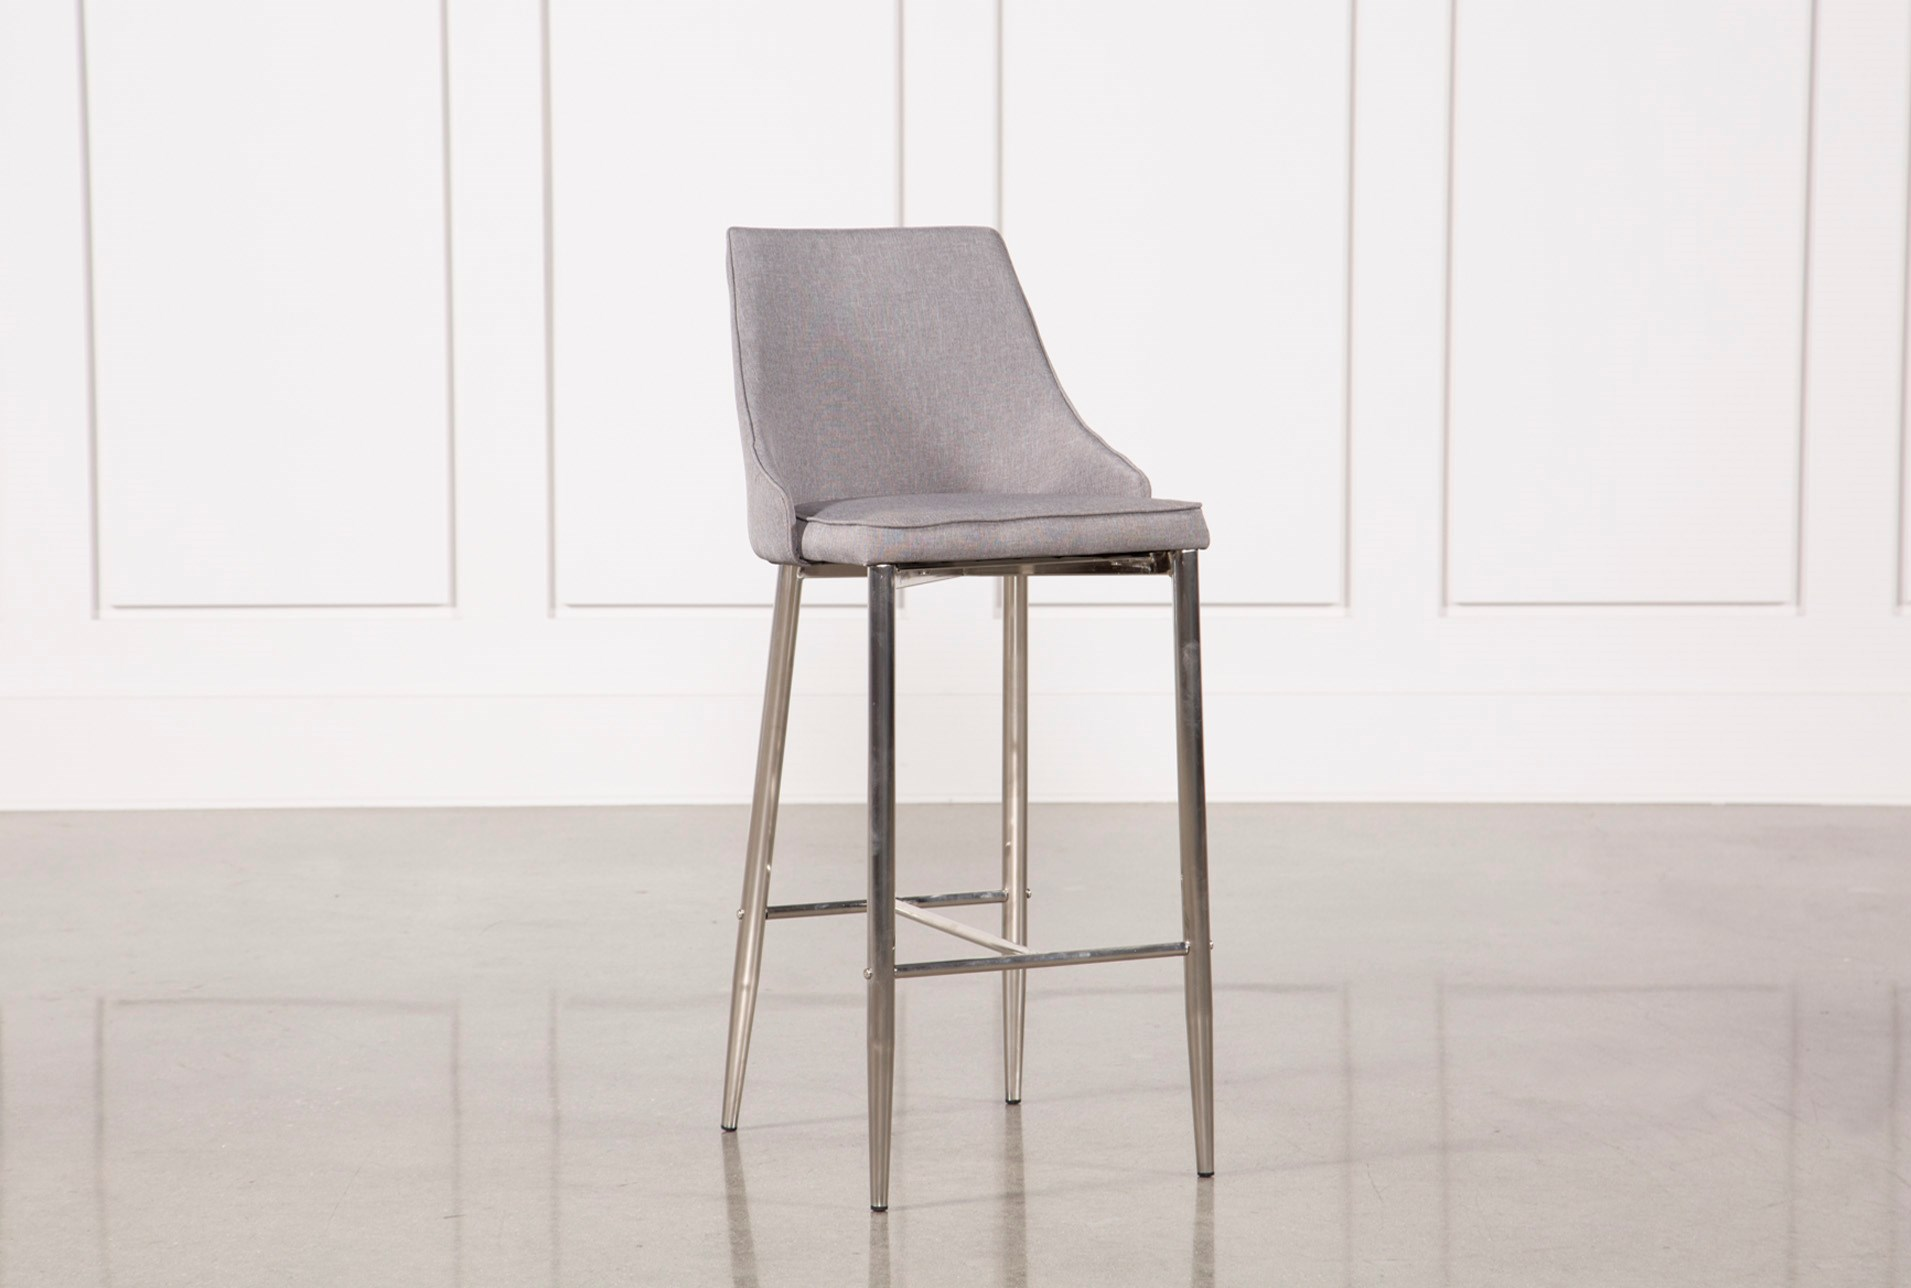 Suki 30 inch barstool qty 1 has been successfully added to your cart